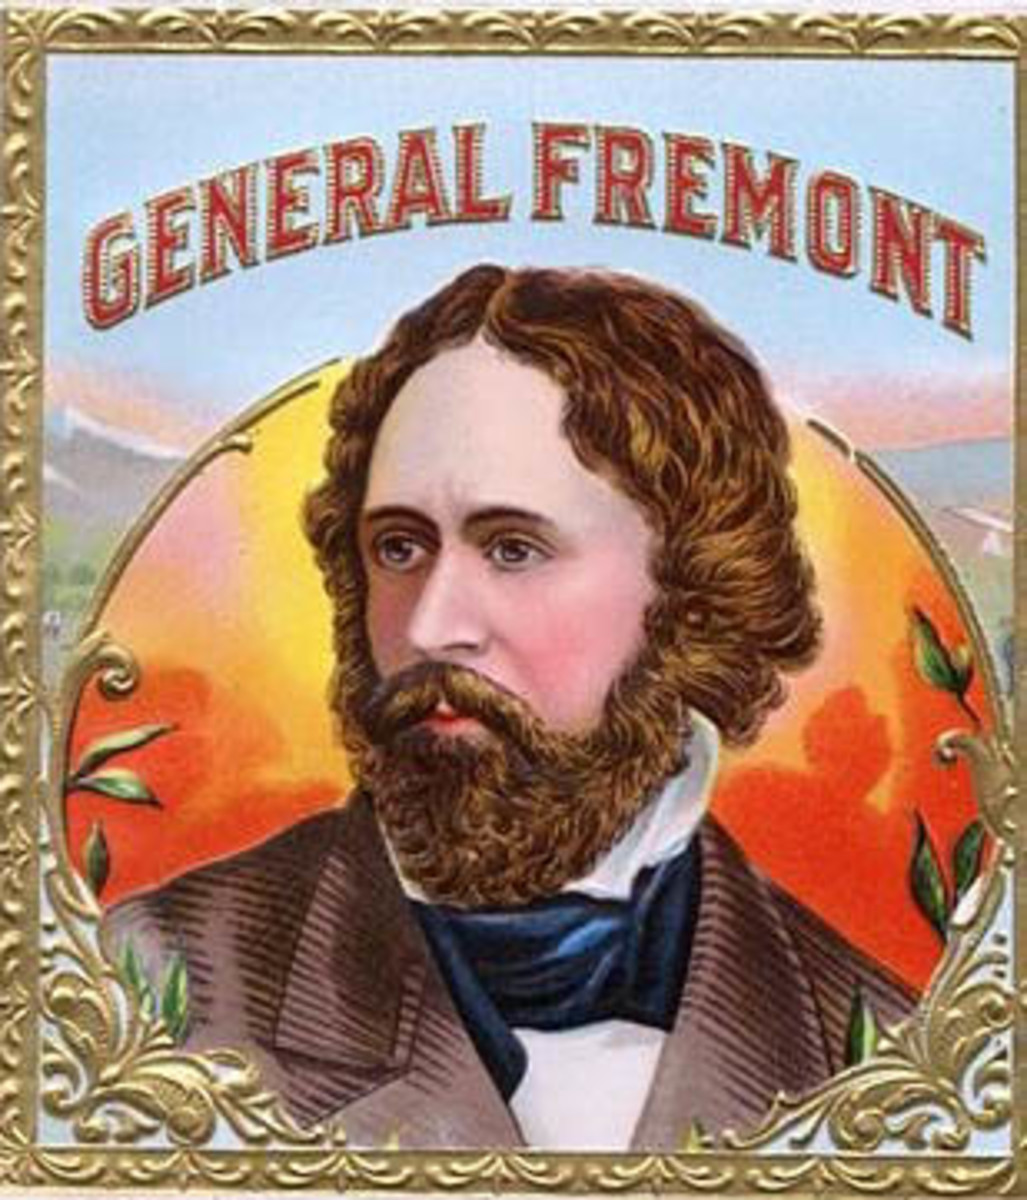 John C. Fremont. In the old days, getting your face on a cigar box was like having your portrait on the Wheaties box.